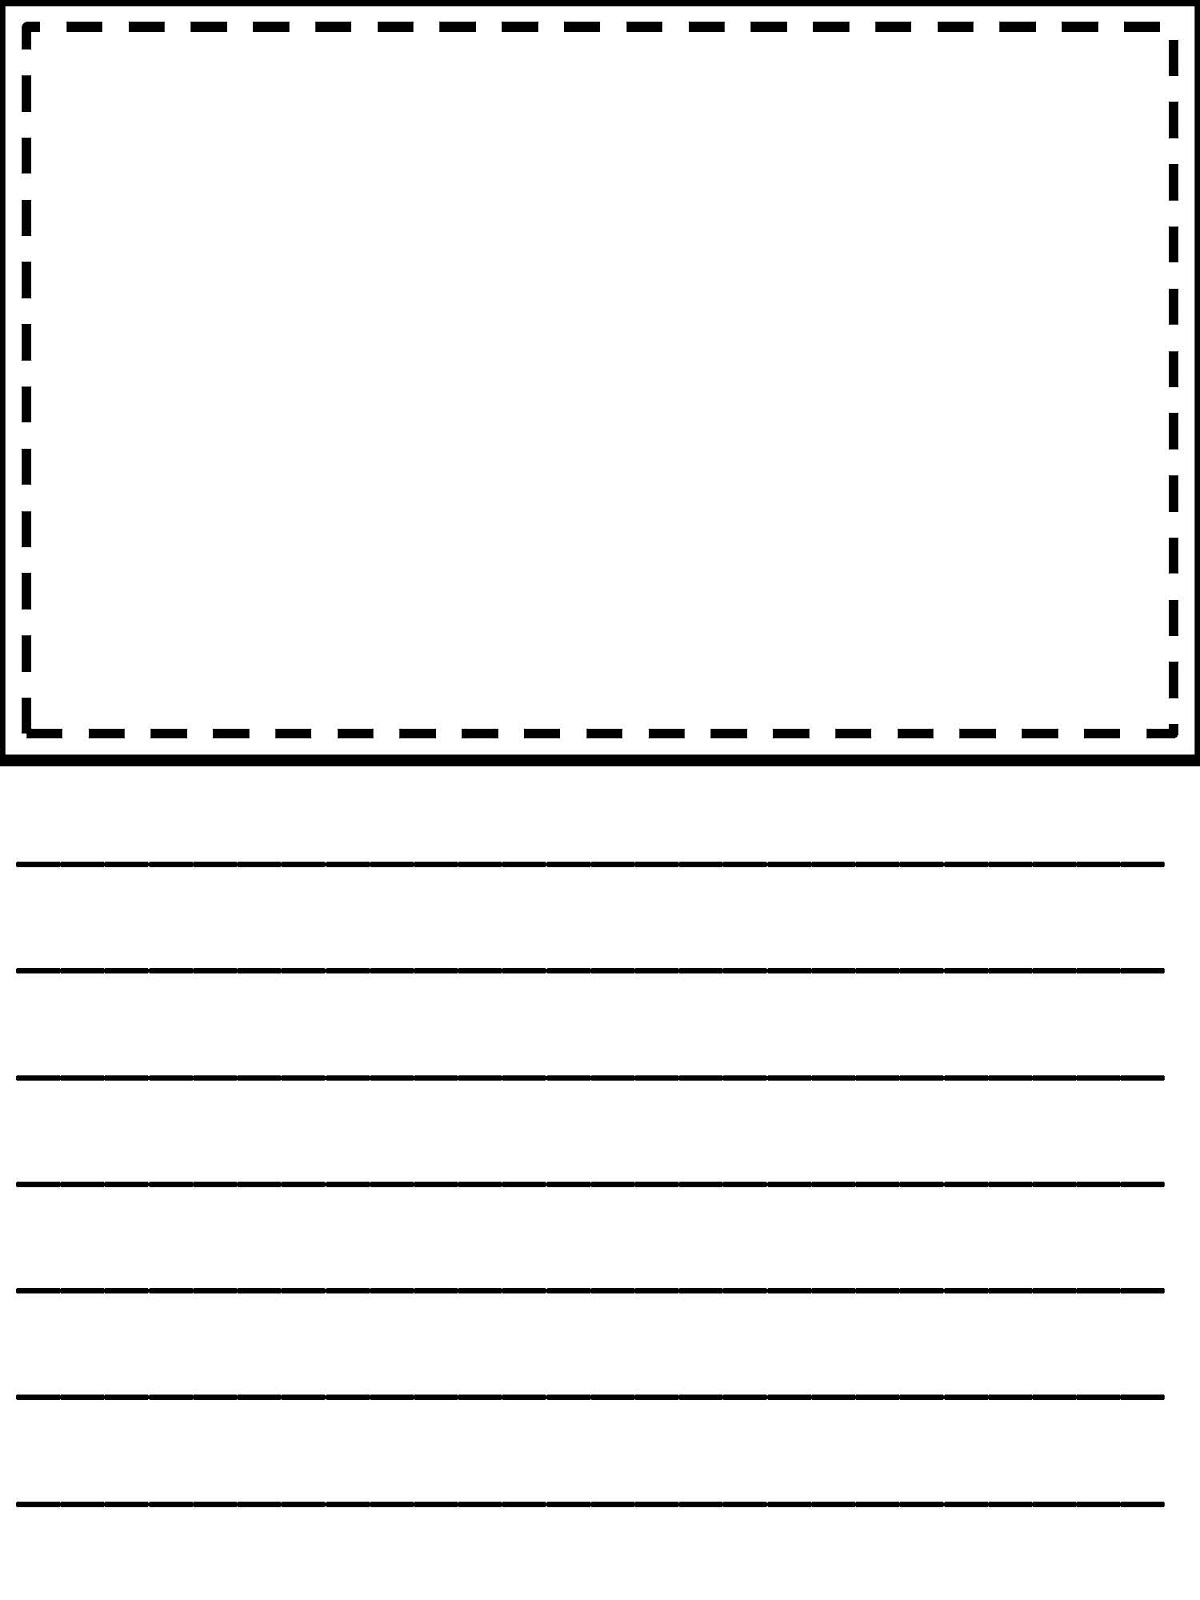 Lined paper with drawing box